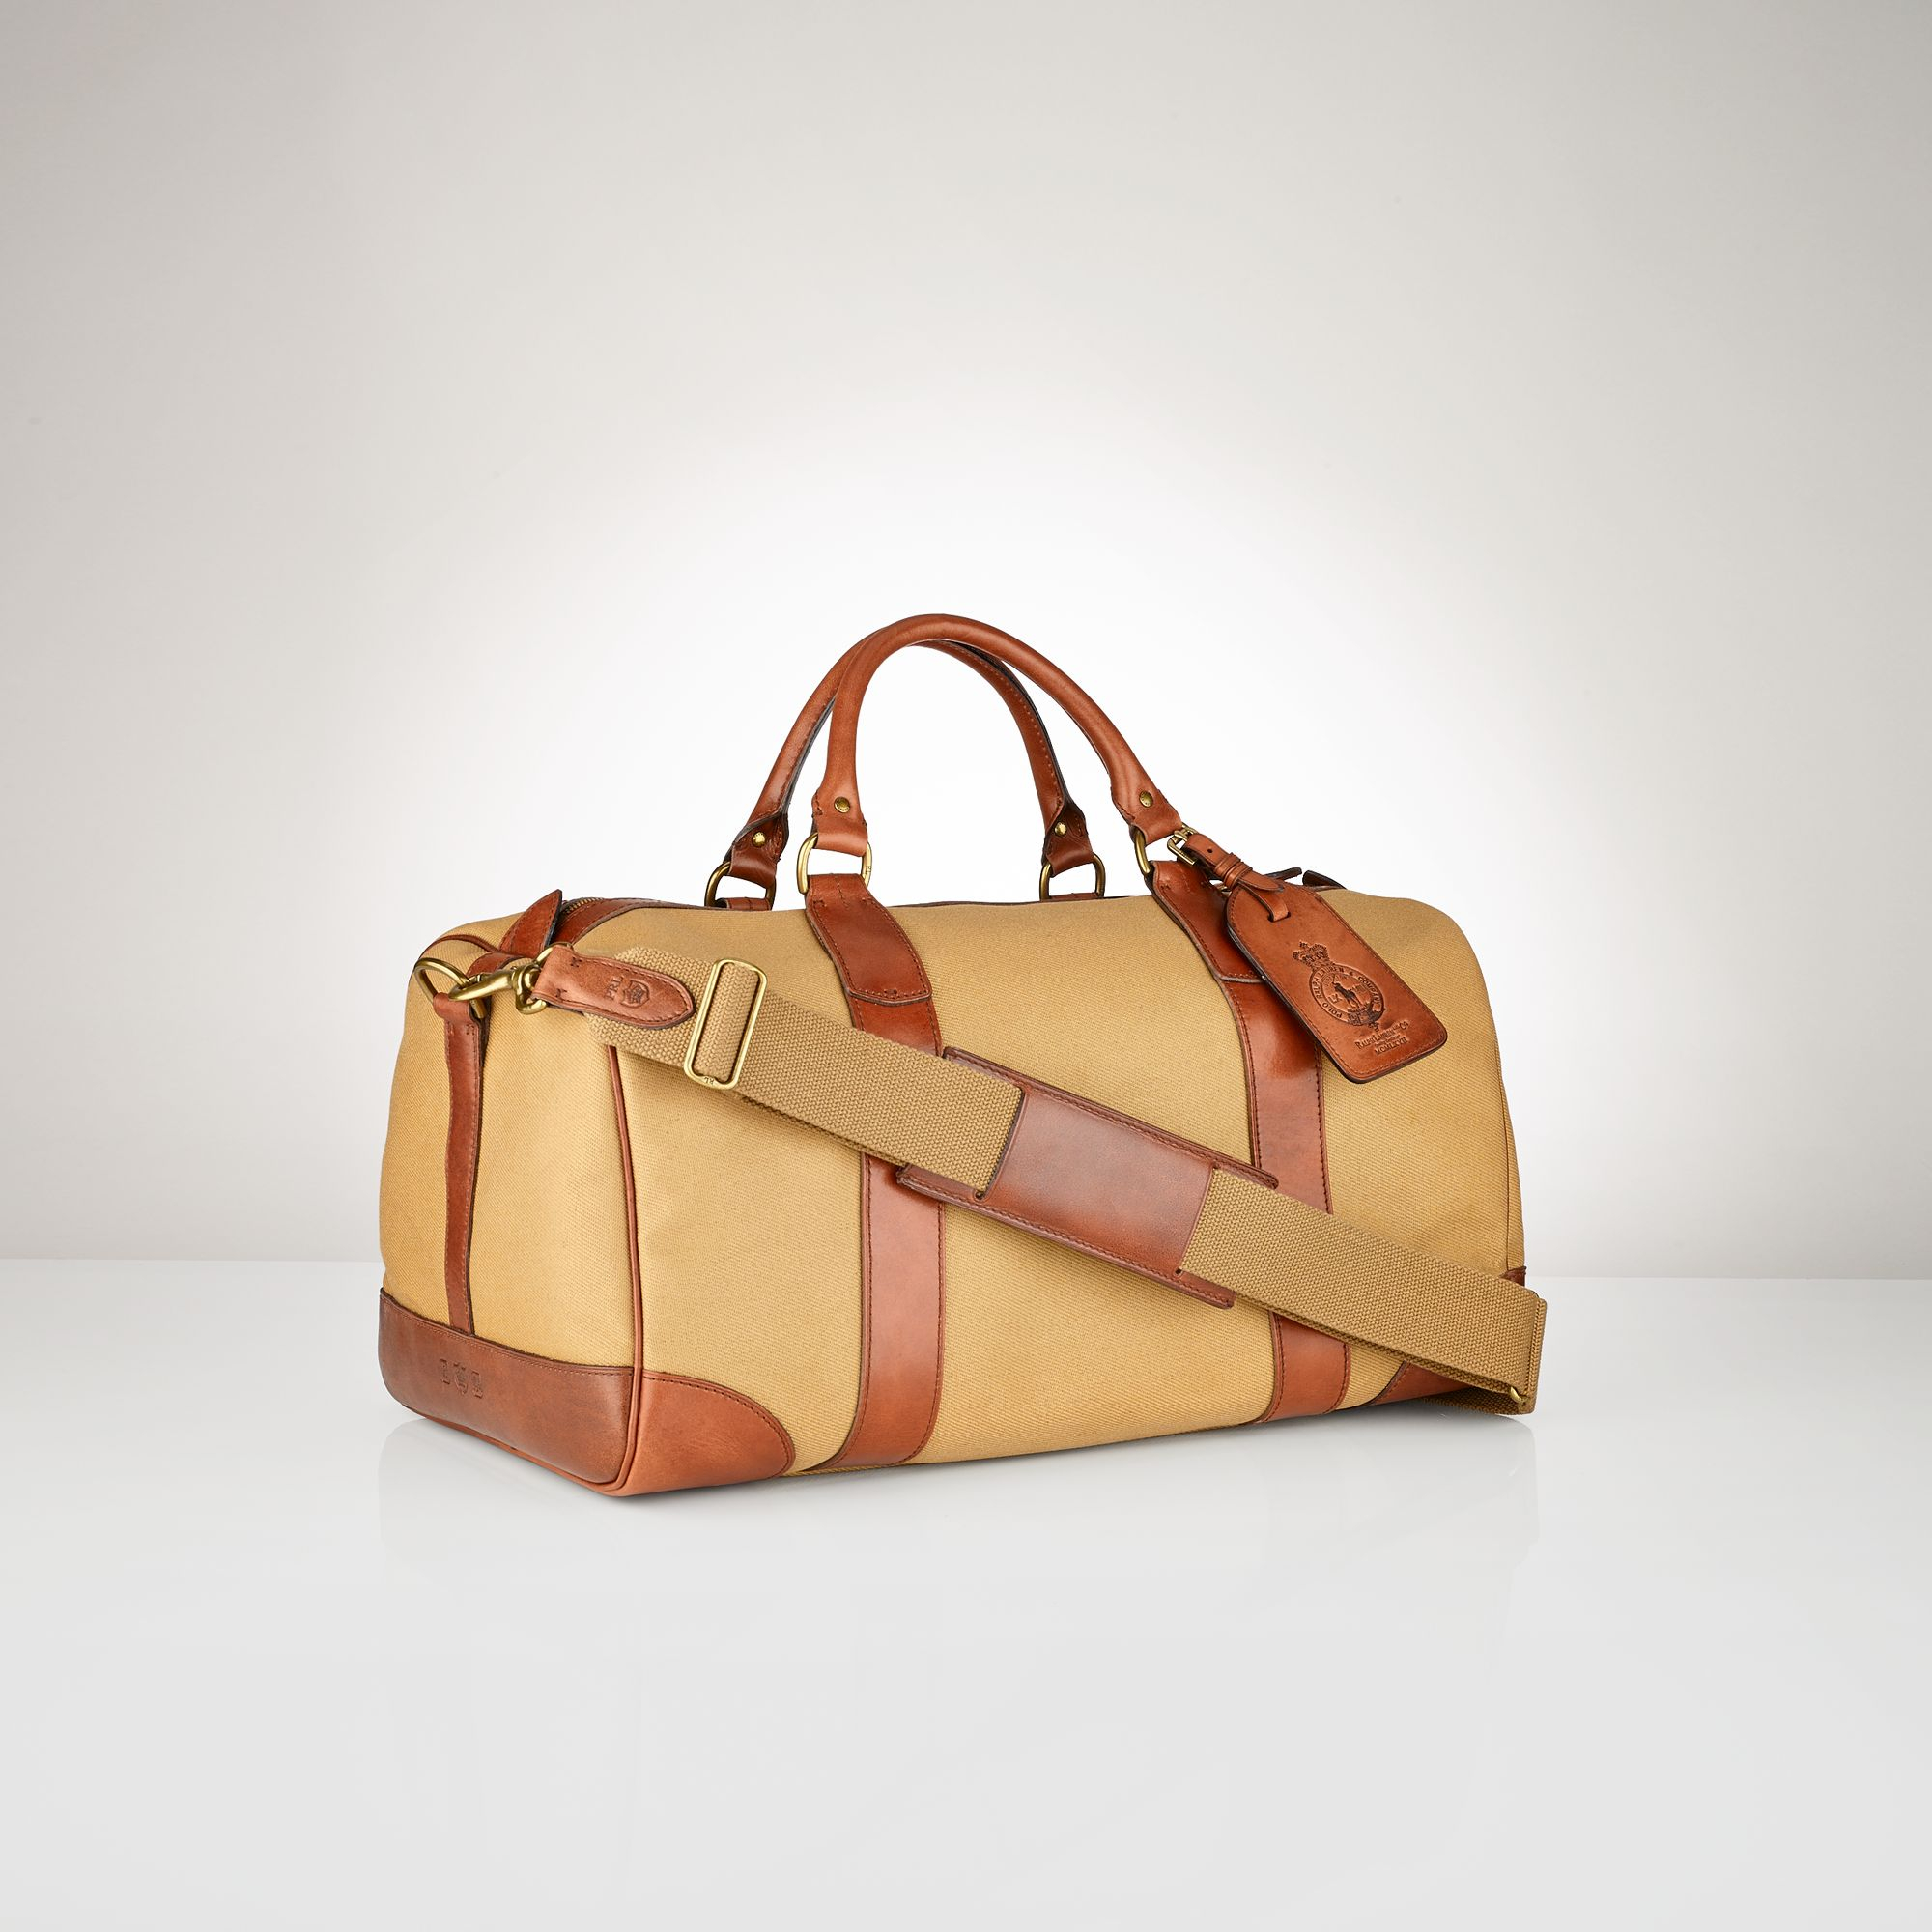 1add31d0979b Polo Ralph Lauren Canvas Leather Gym Bag in Natural for Men - Lyst